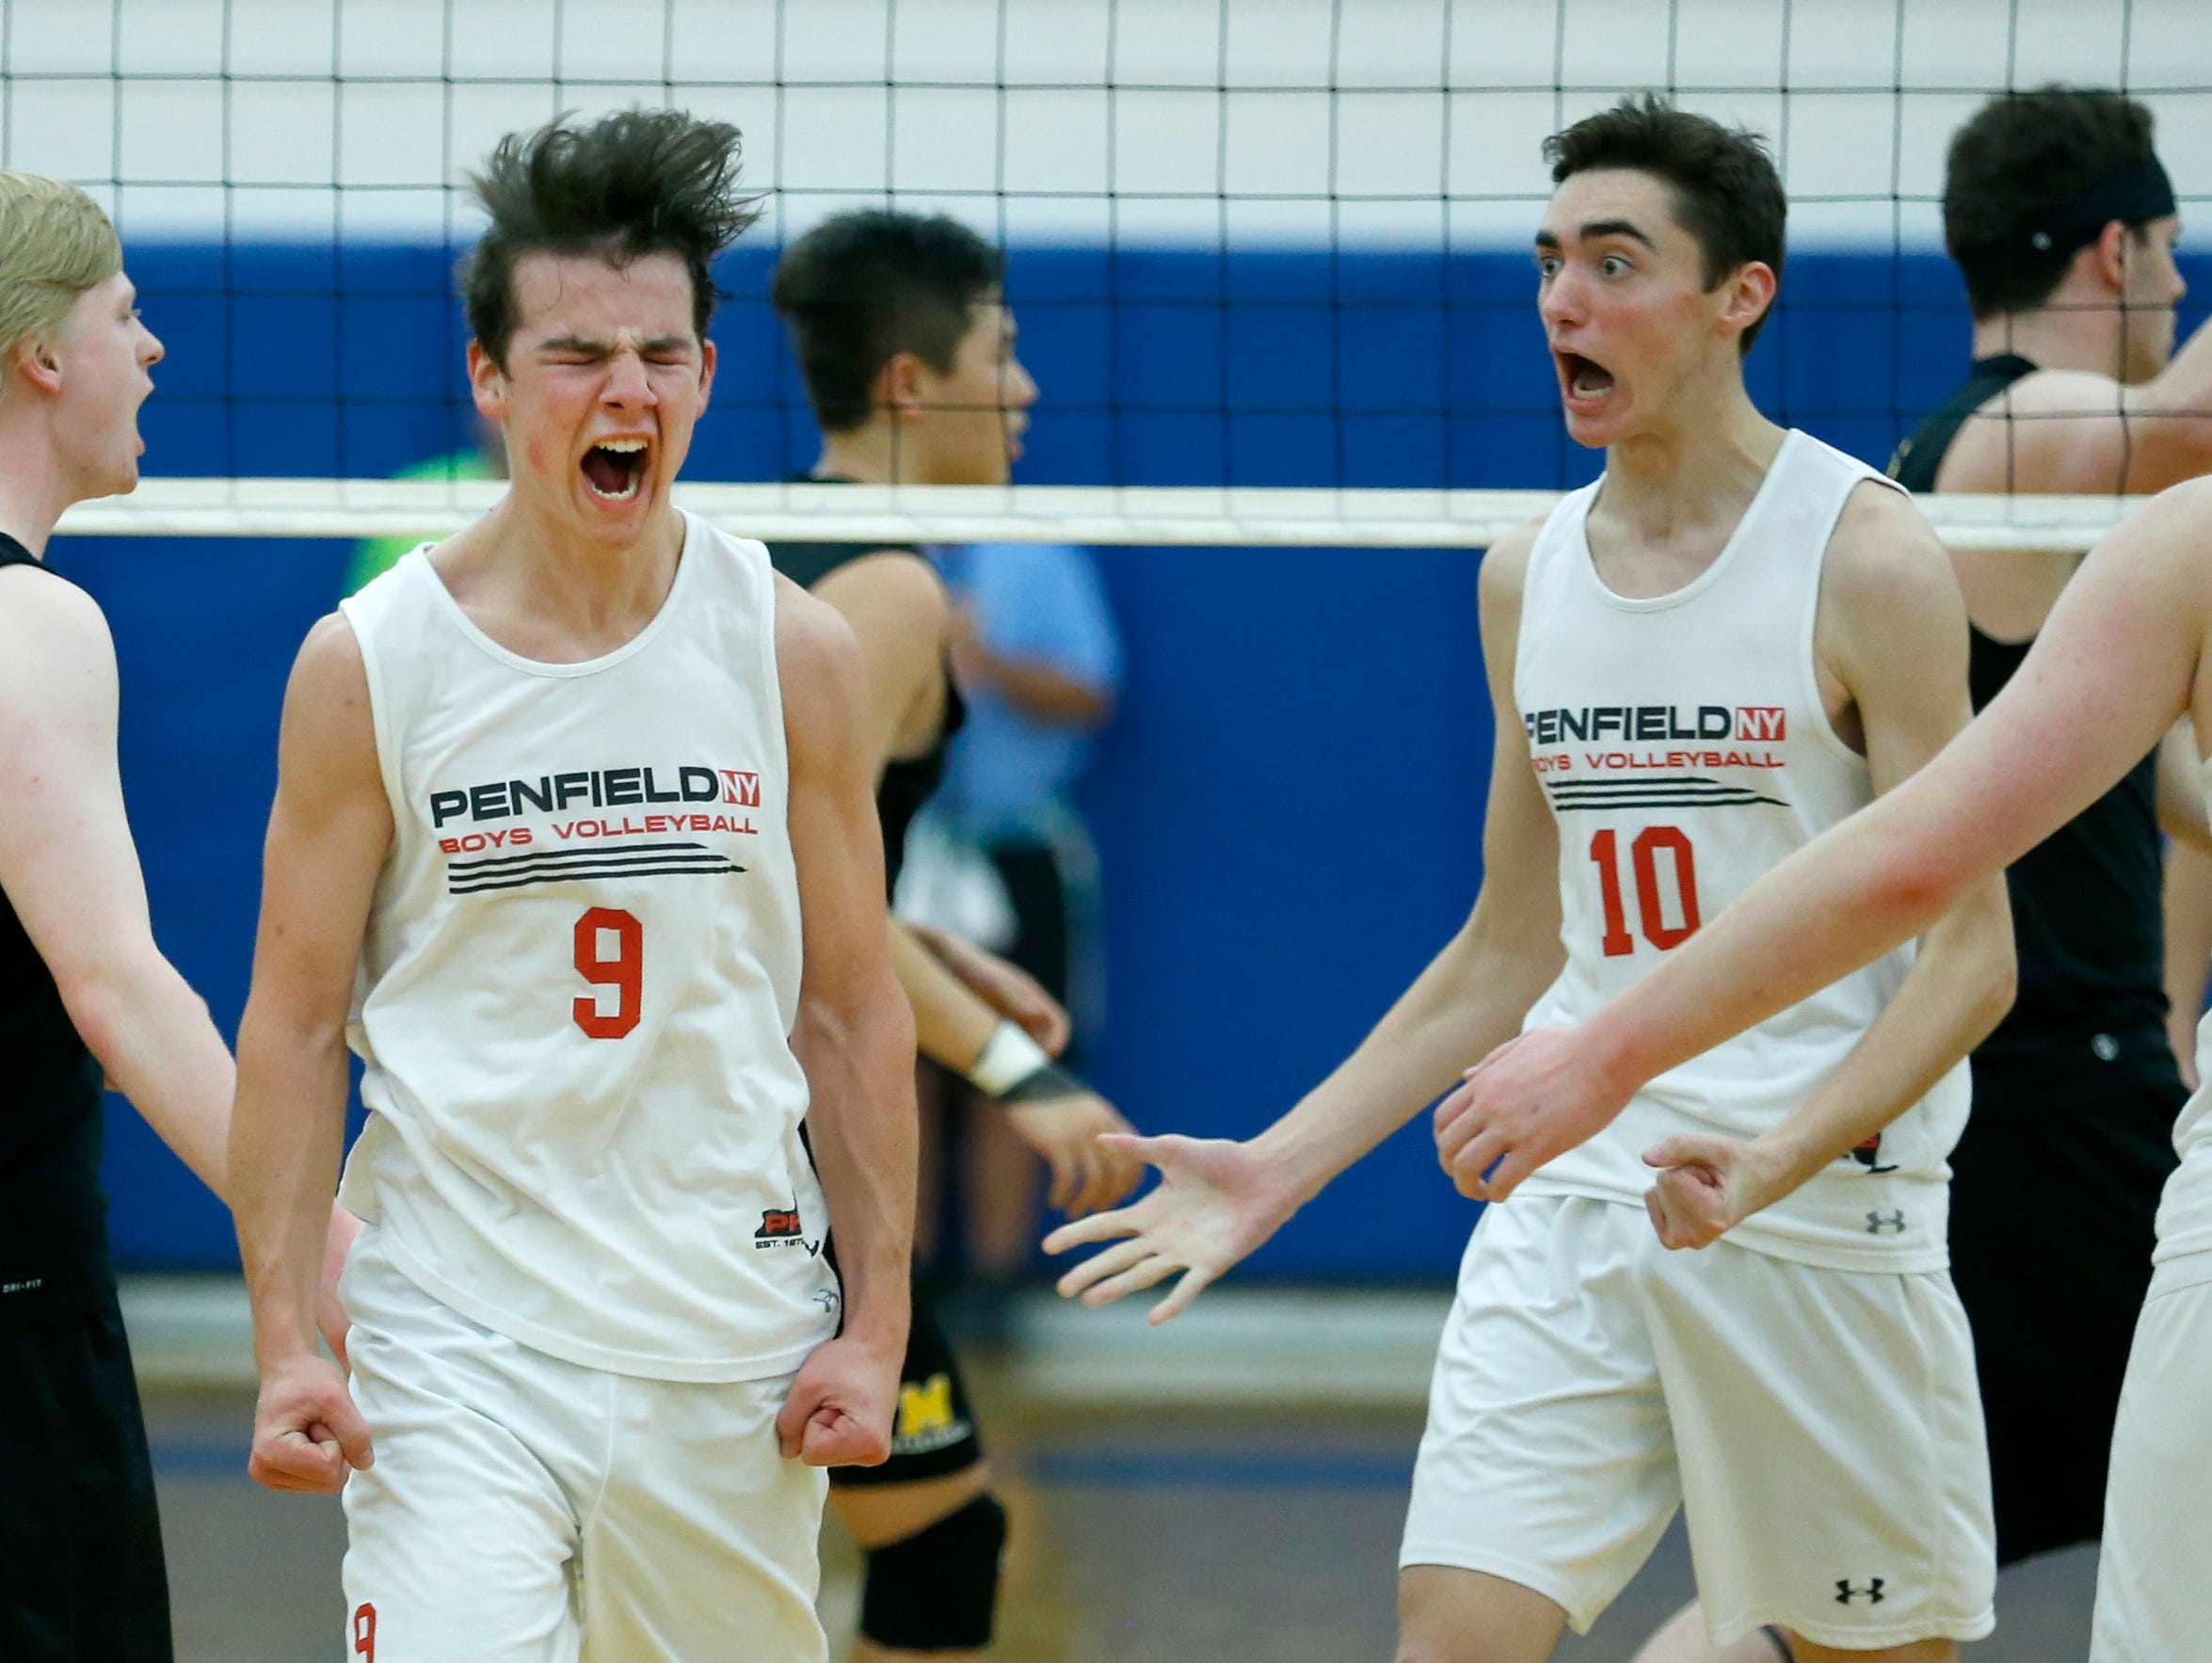 Penfield's Jett Klintworth reacts after a point against McQuaid in the second set at Webster Schroeder High School.